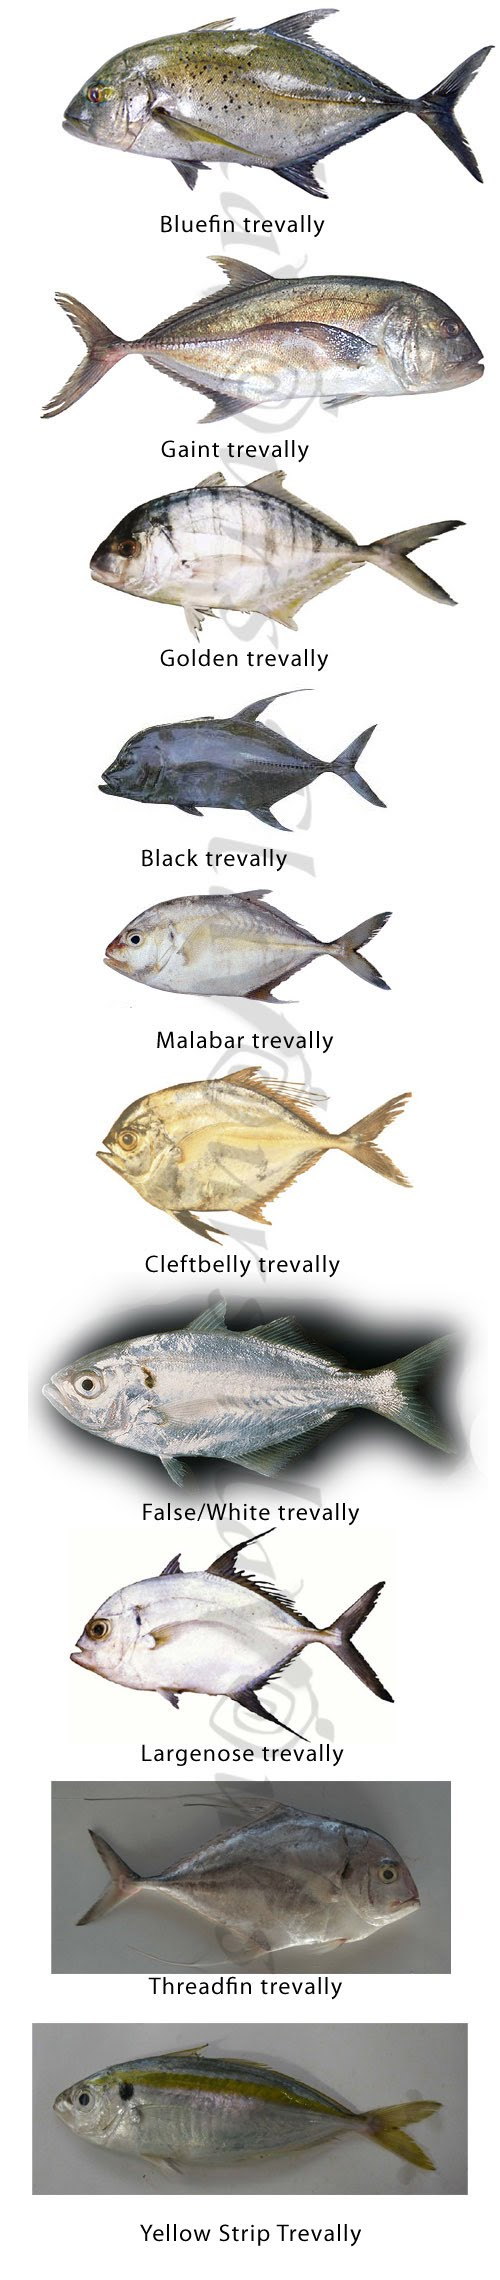 Trevally  - Click for a bigger view